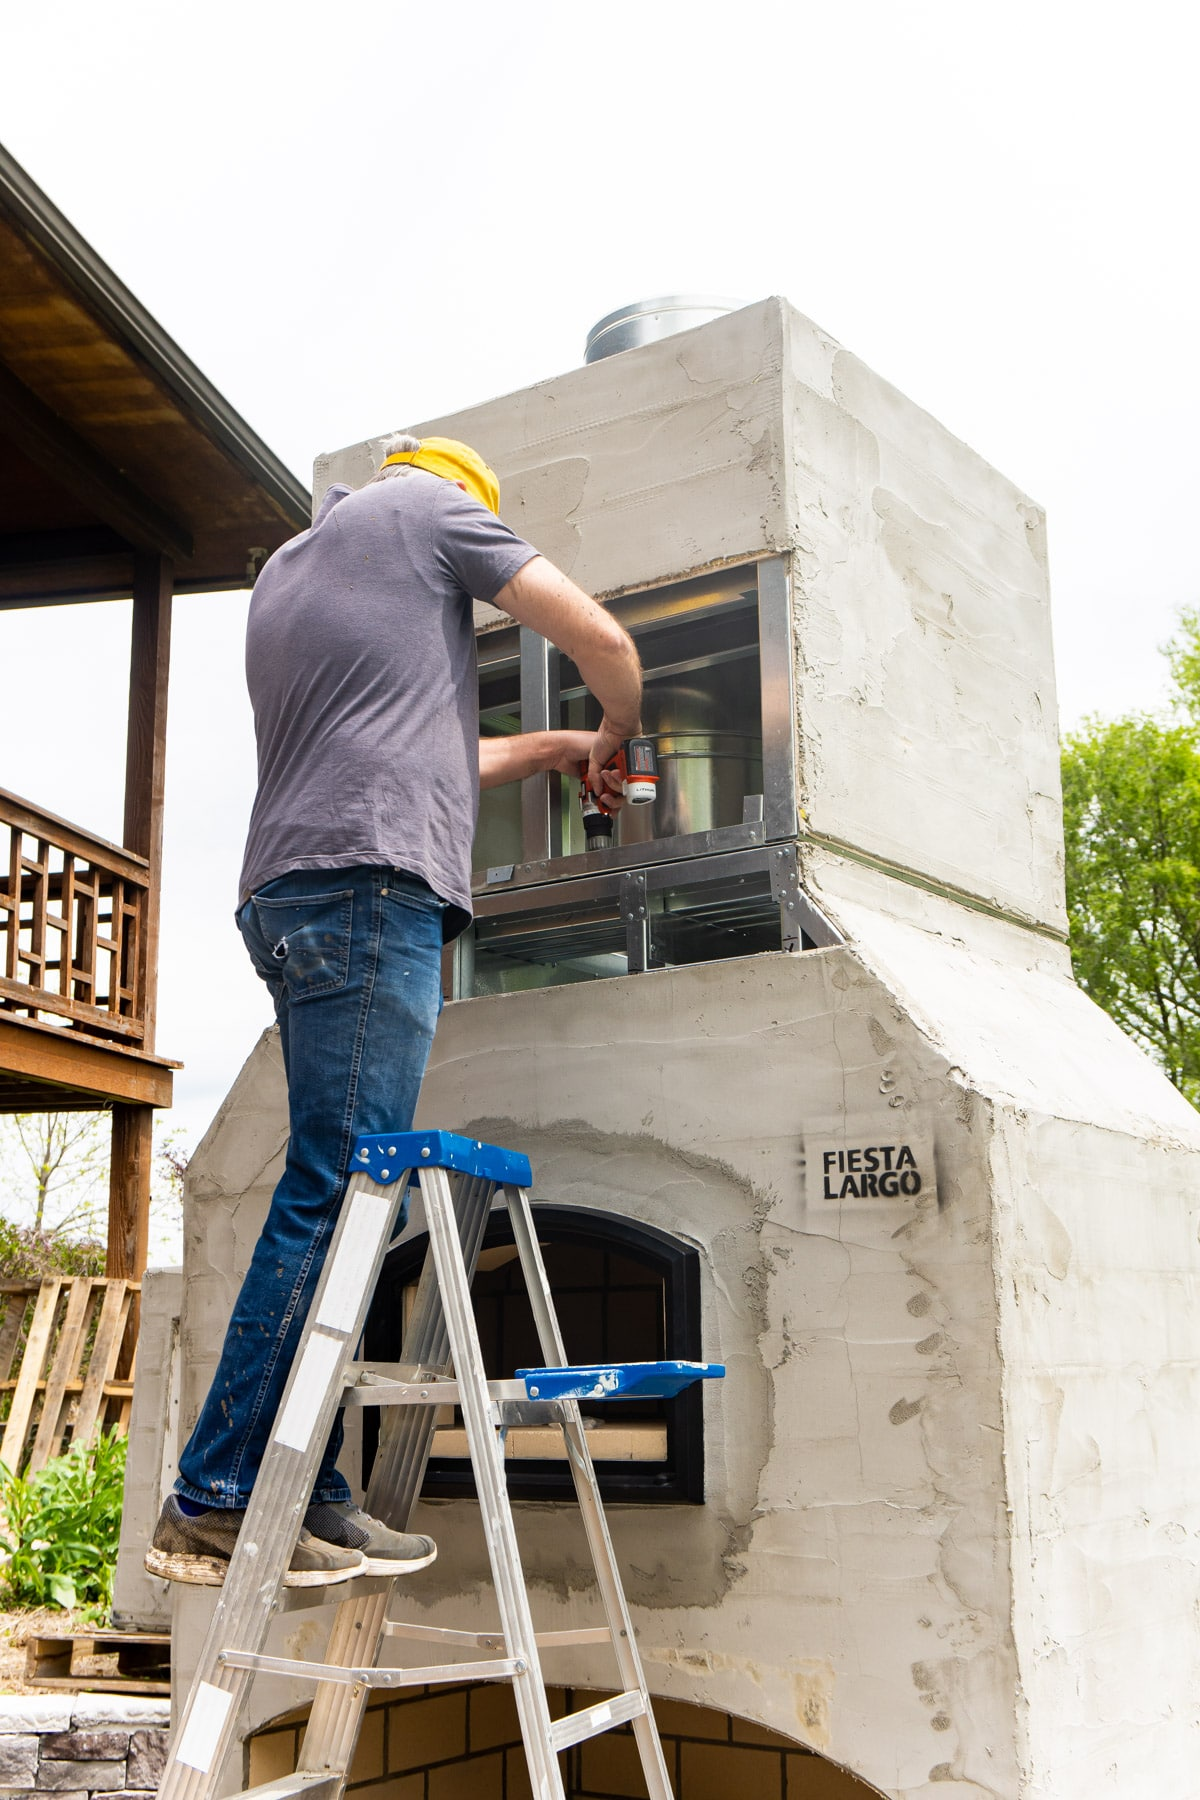 Adding chimney to an outdoor brick oven